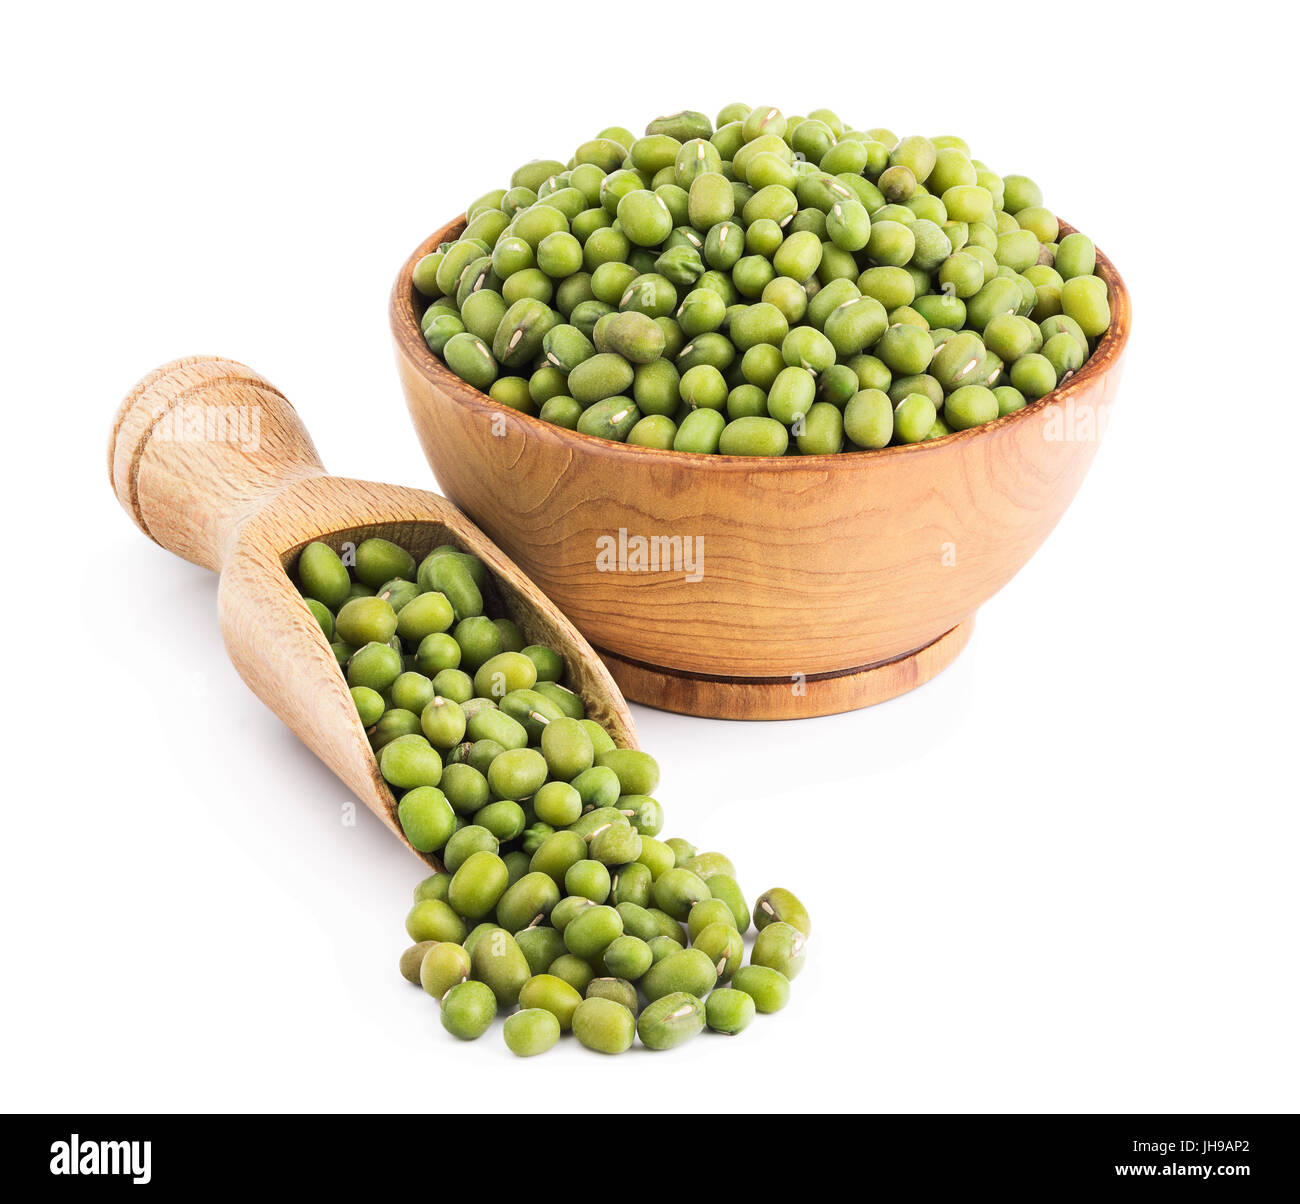 Green mung beans isolated on white - Stock Image